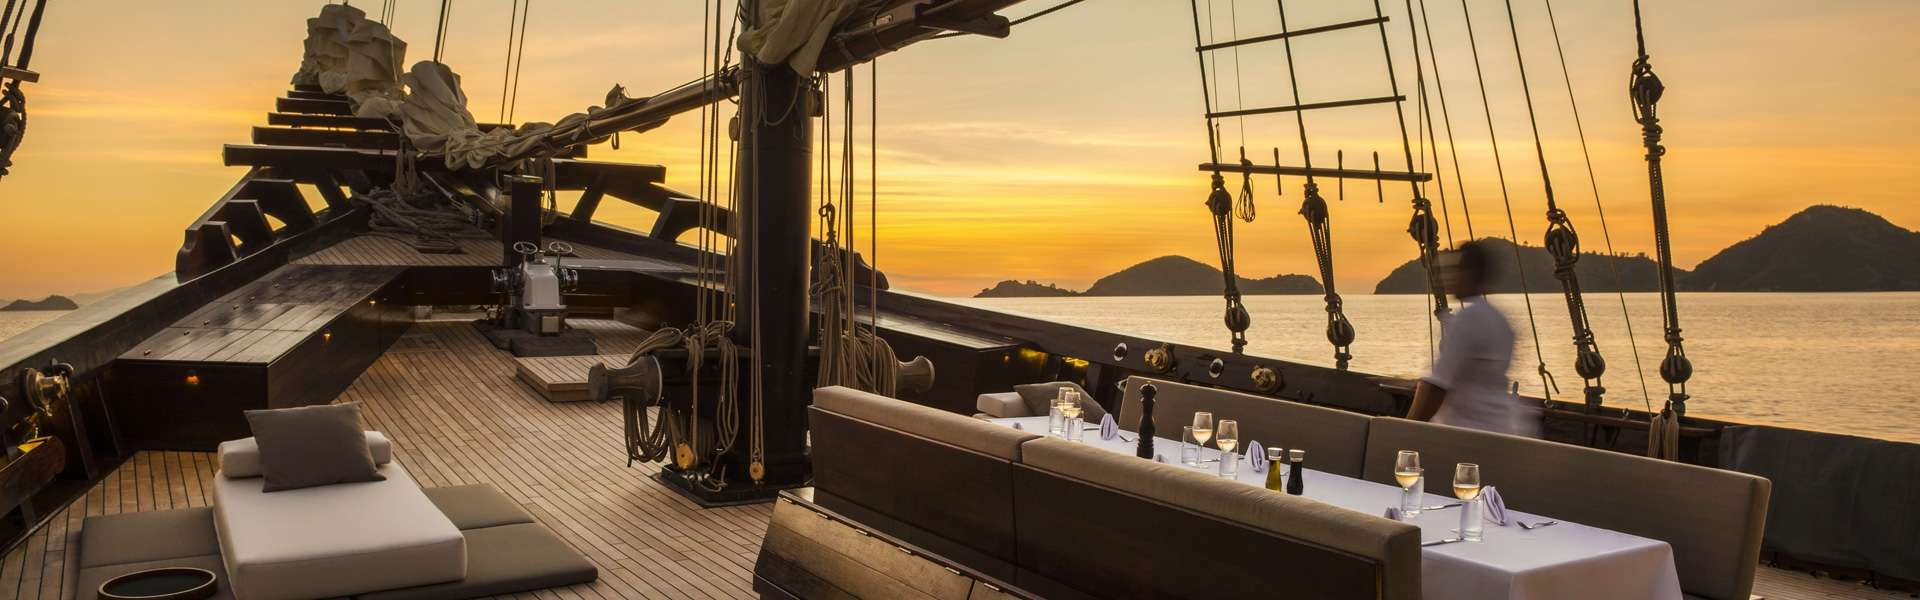 Gourmet sunset sailing yacht